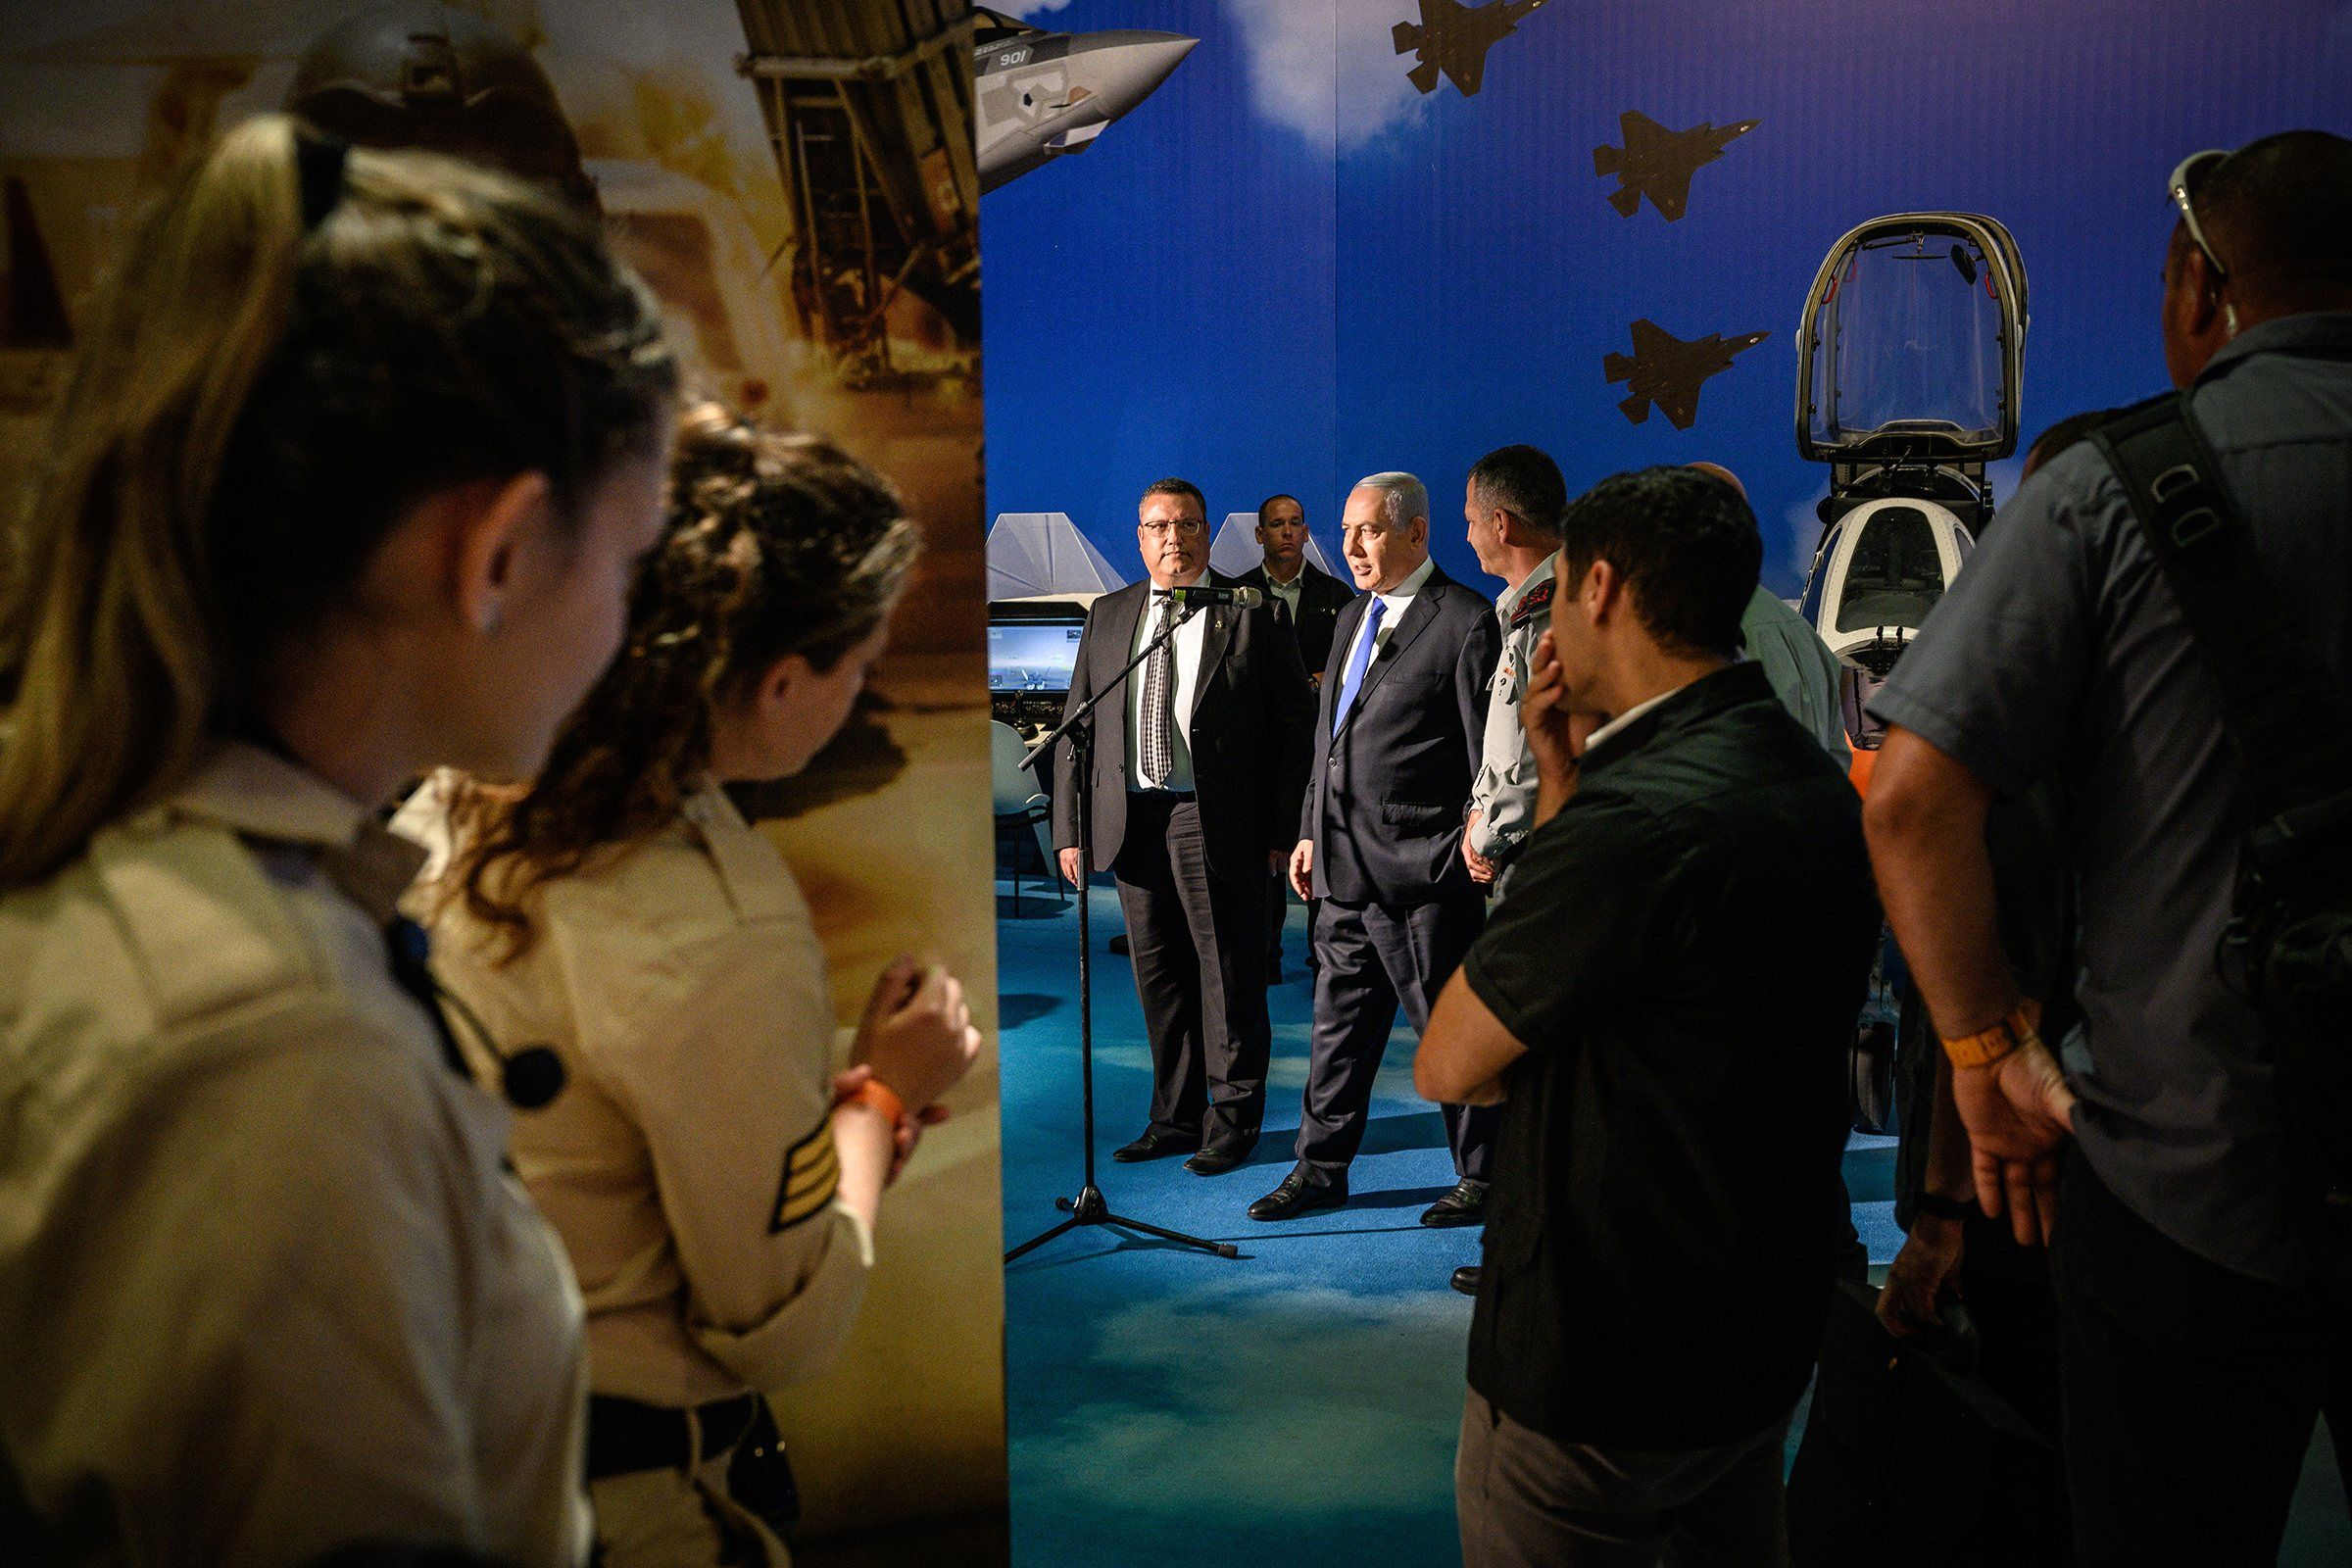 Israeli Prime Minister Benjamin Netanyahu opens an exhibit on the Israel Defense Forces, a driver behind the nation's booming tech sector, in Jerusalem on June 25.